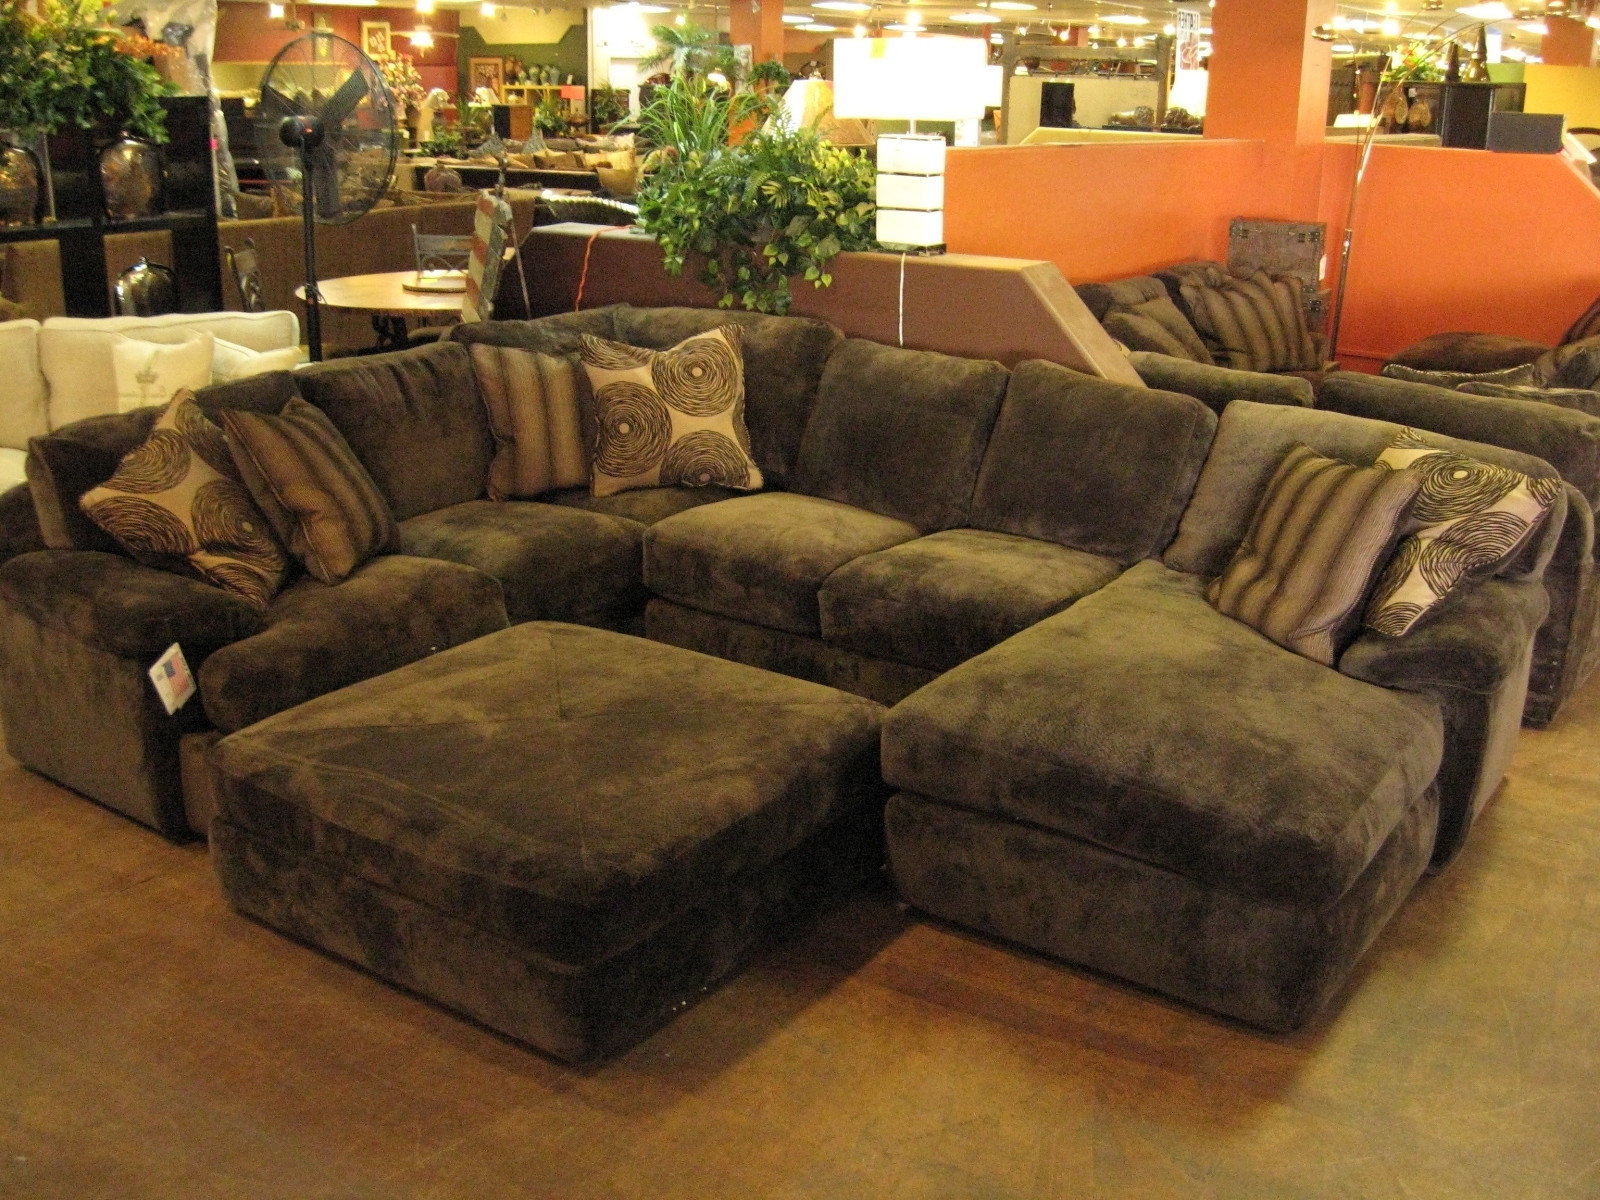 Deep U Shaped Sectionals With Regard To Most Current Extra Deep U Shaped Sofa With Chaise And Ottoman Of Gorgeous Extra (Gallery 9 of 20)